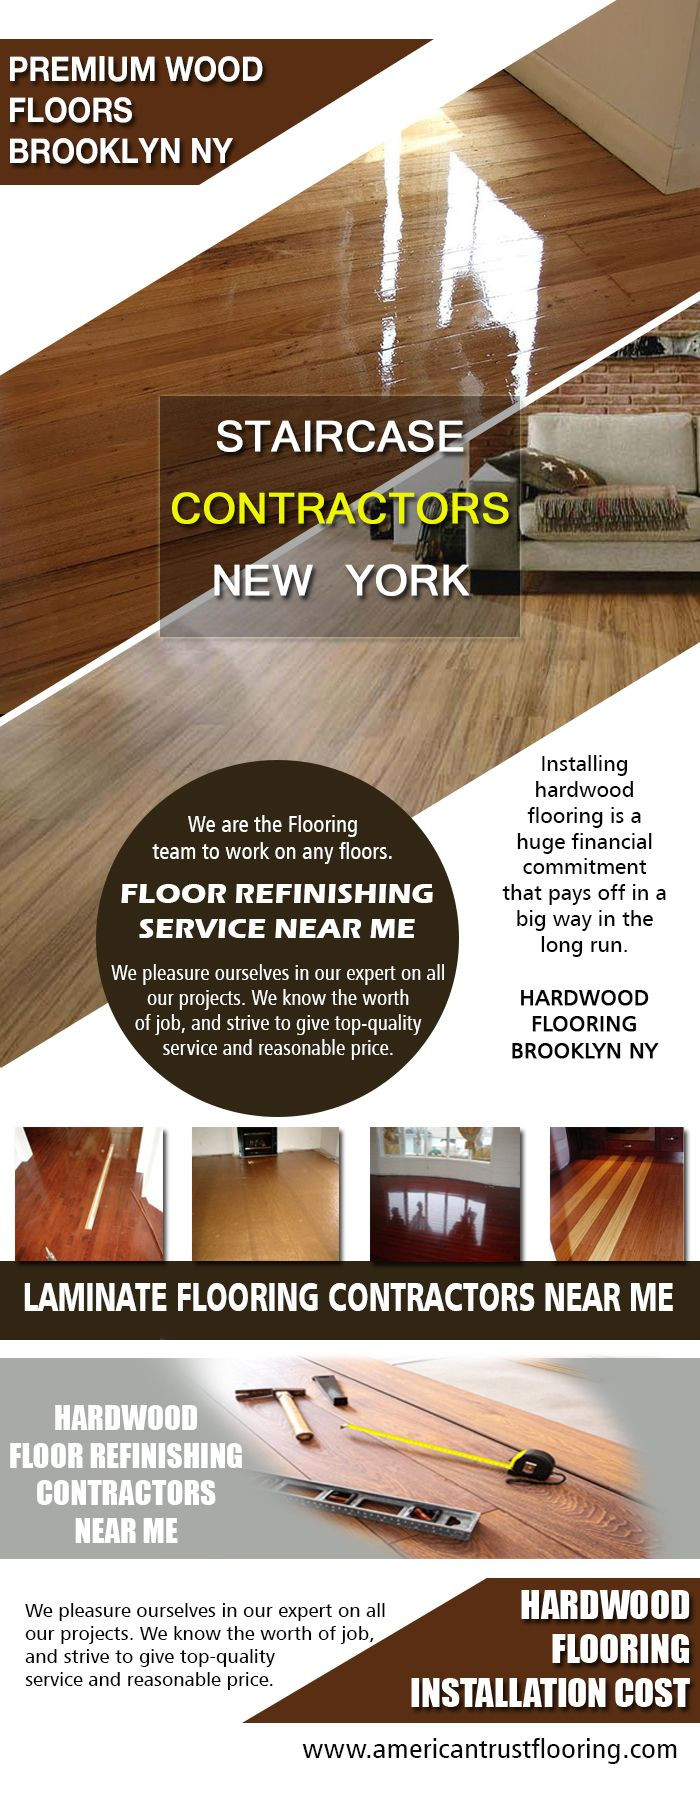 hardwood flooring stores in brooklyn ny of wood floor nyc hardwood floorny on pinterest within 84f9e621718657b4146ae4007fb92759